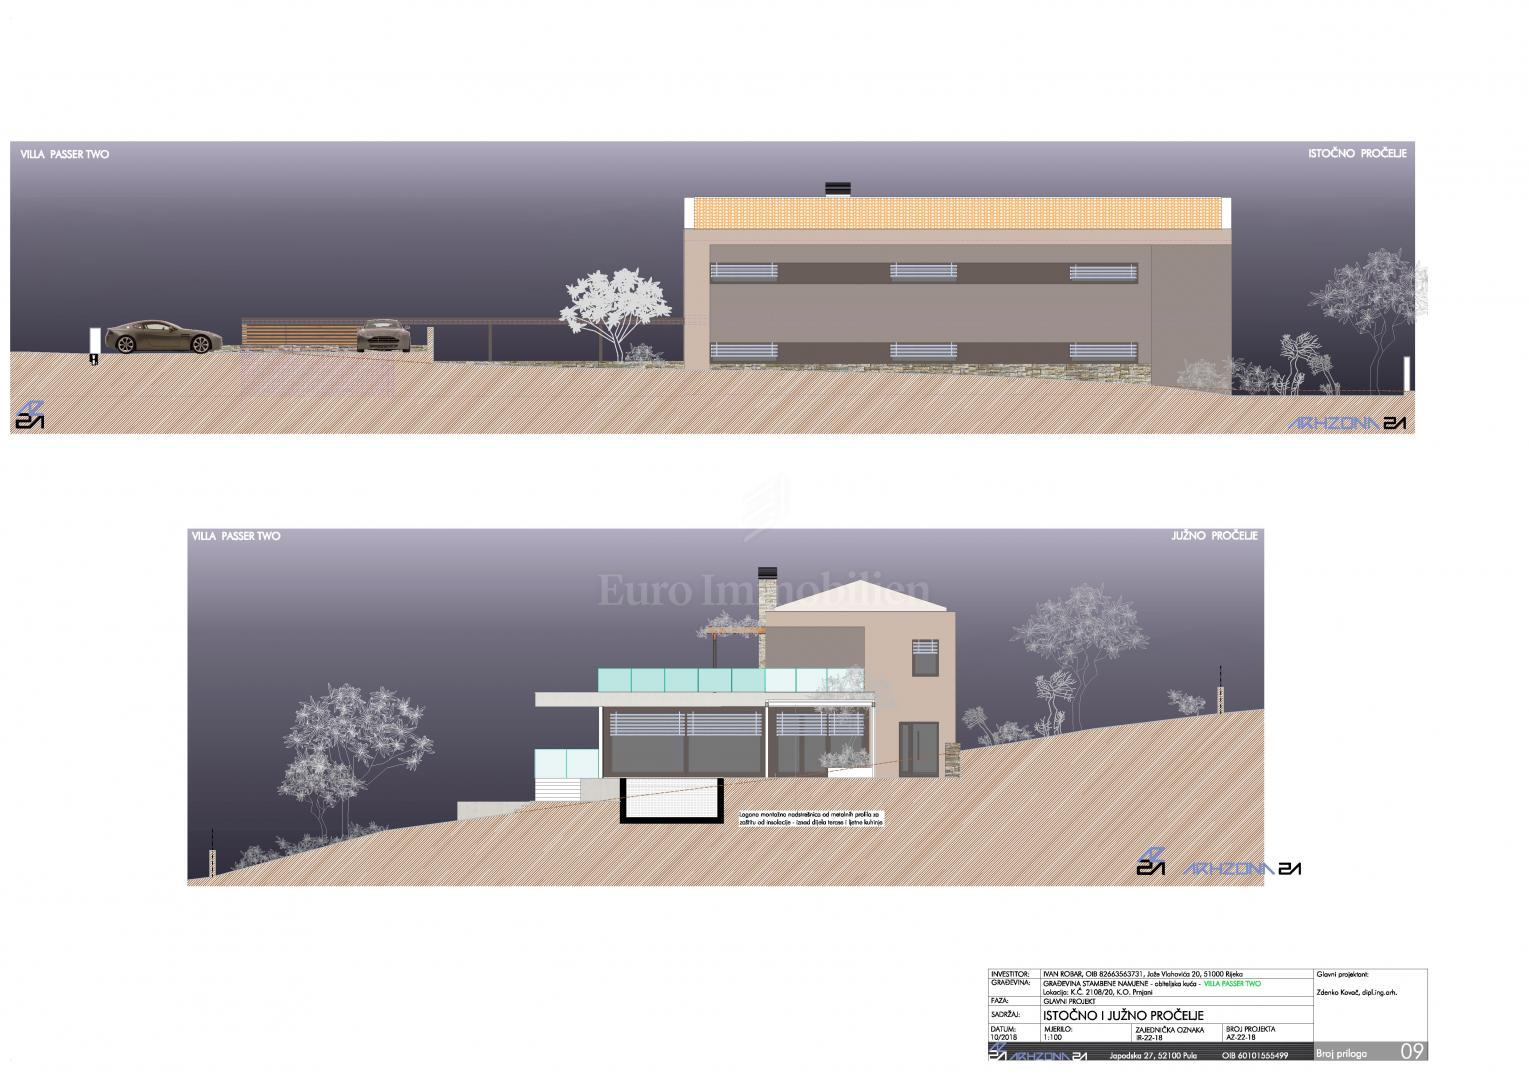 OPPORTUNITY! Building land with a permit to build a modern villa with pool